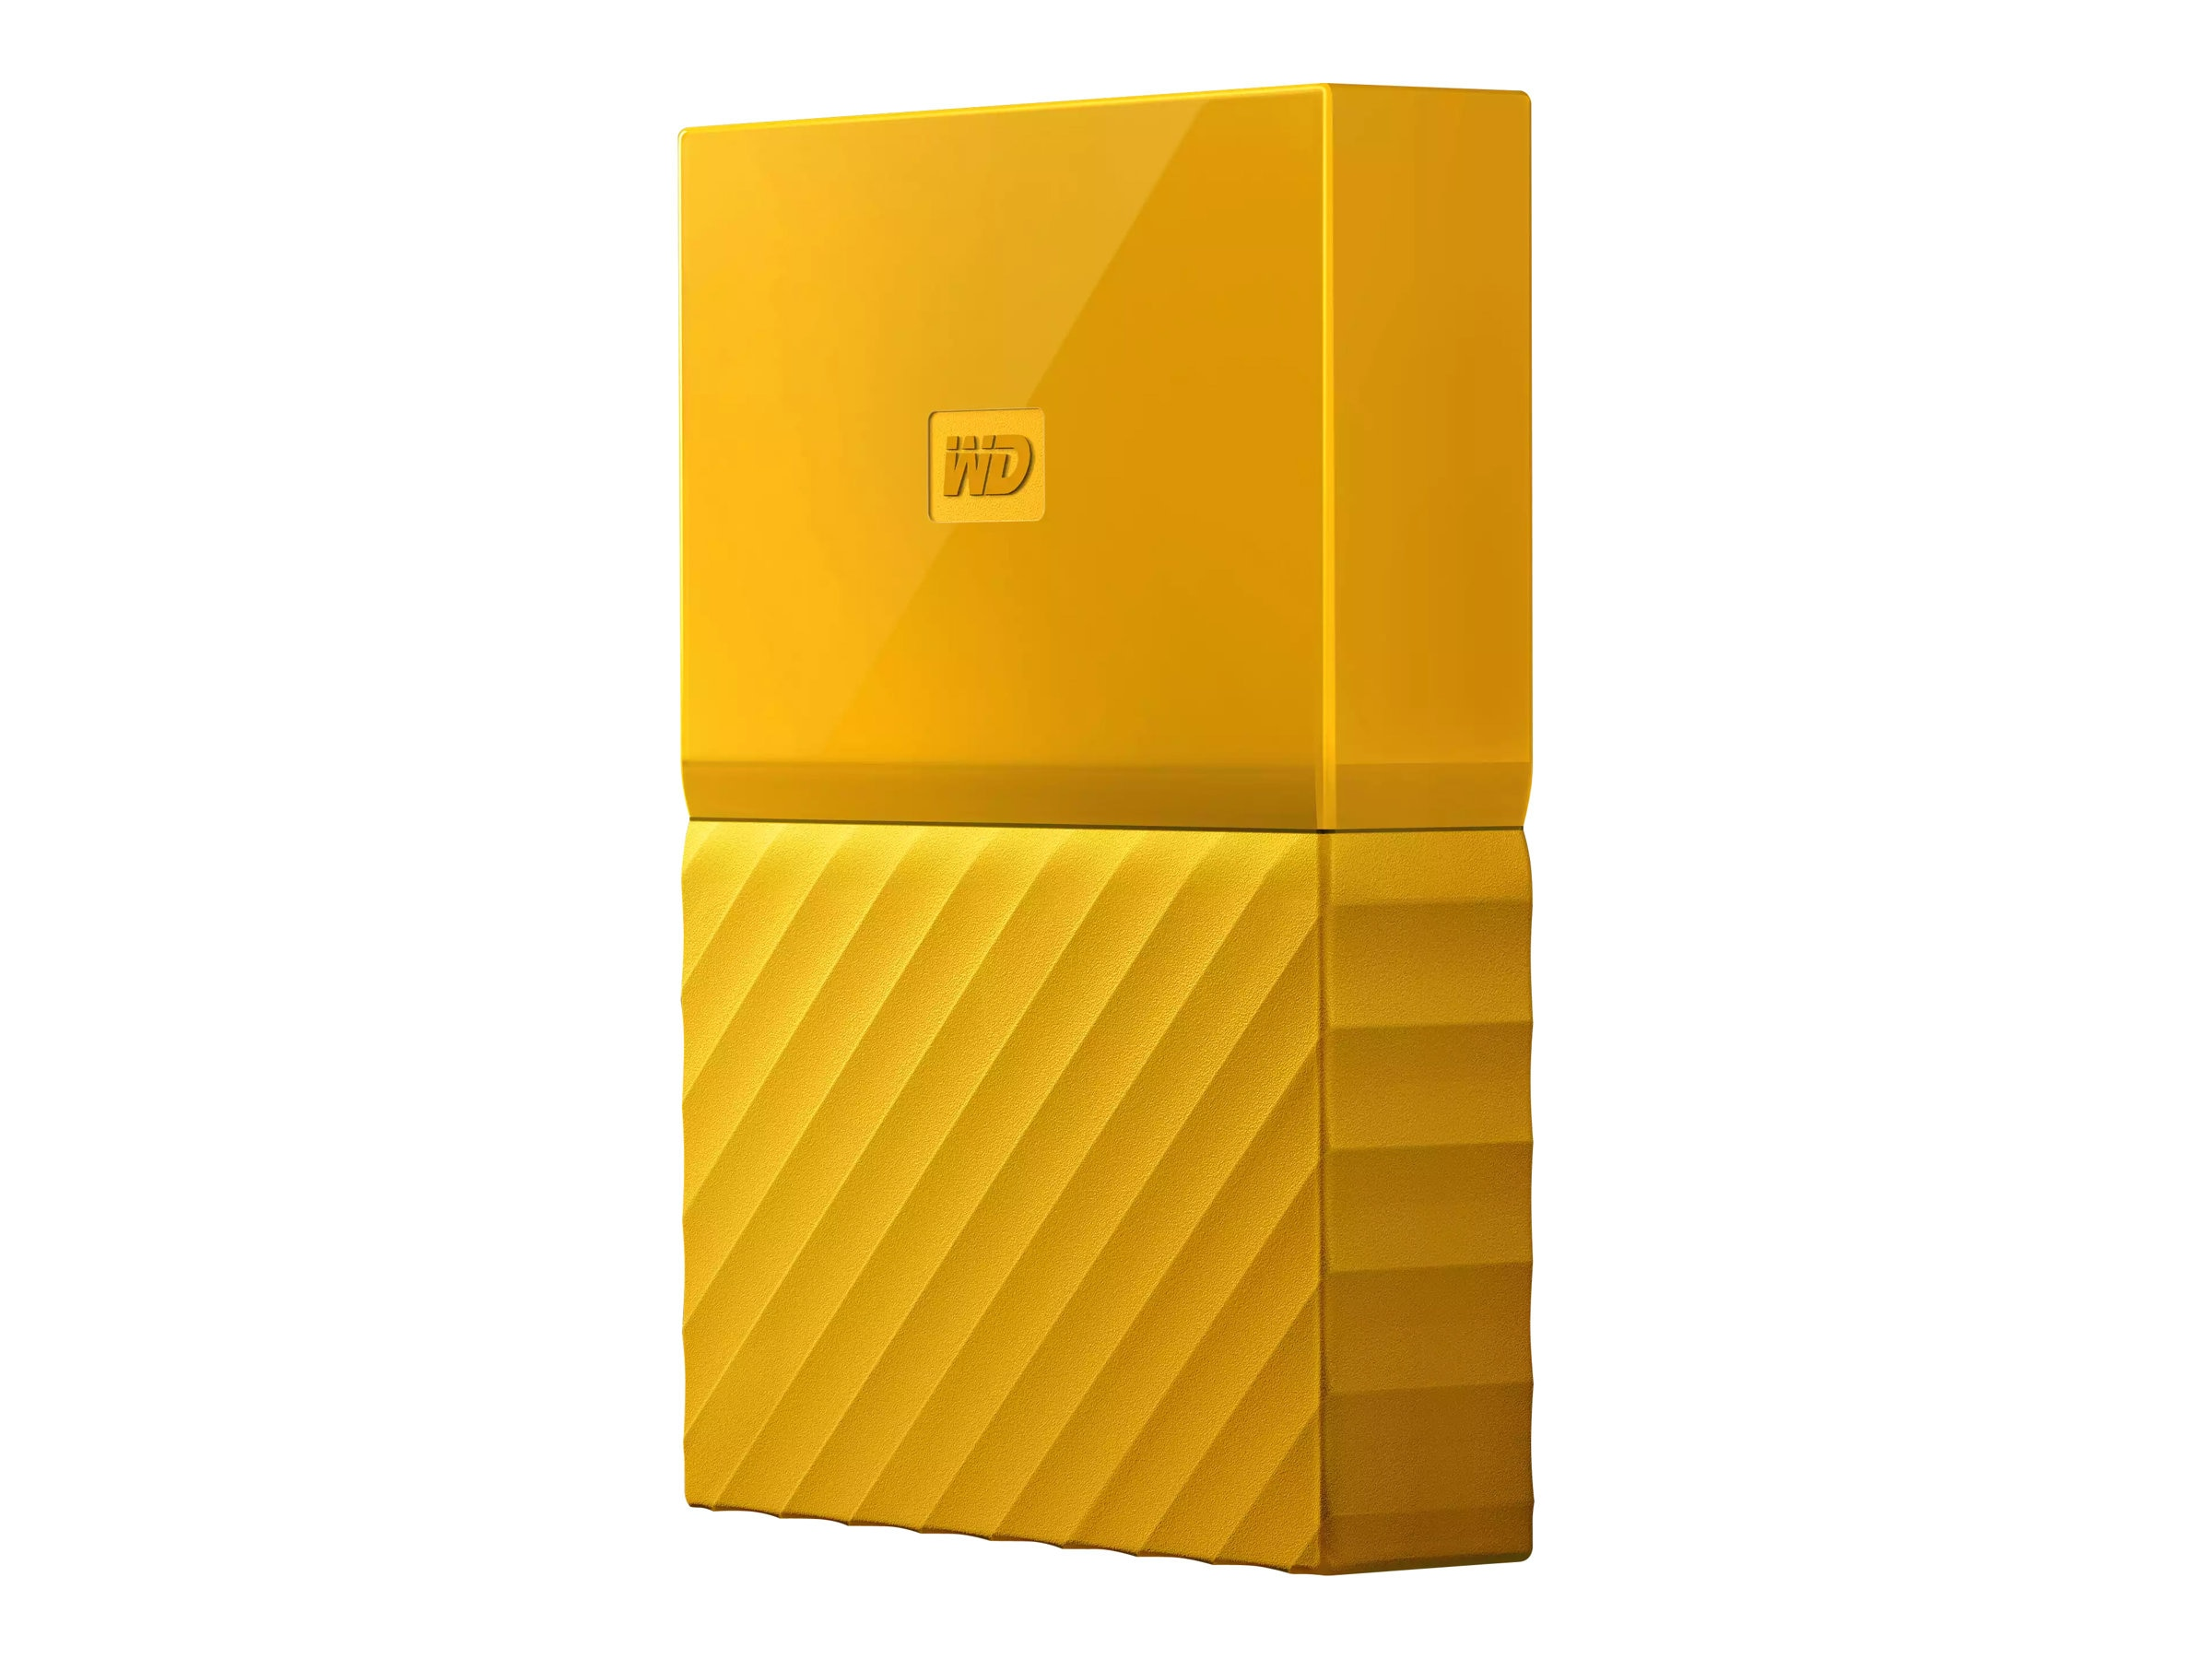 WD 4TB My Passport USB 3.0 Portable Hard Drive - Yellow